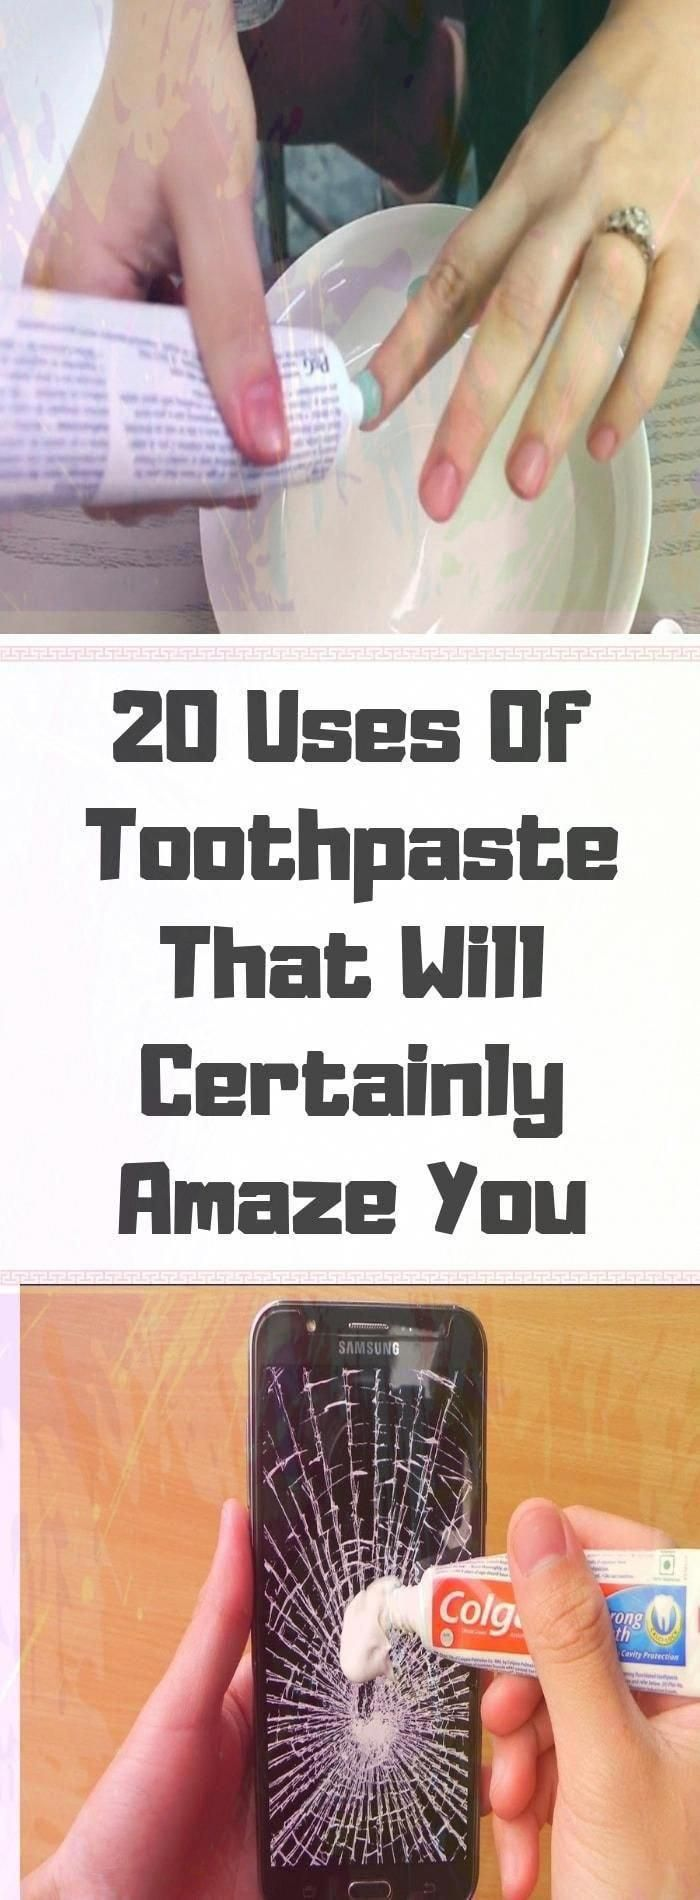 I Never Imagined That Toothpaste Could Do So Many Things. Check Out These 20 Amazing Tricks!#health...